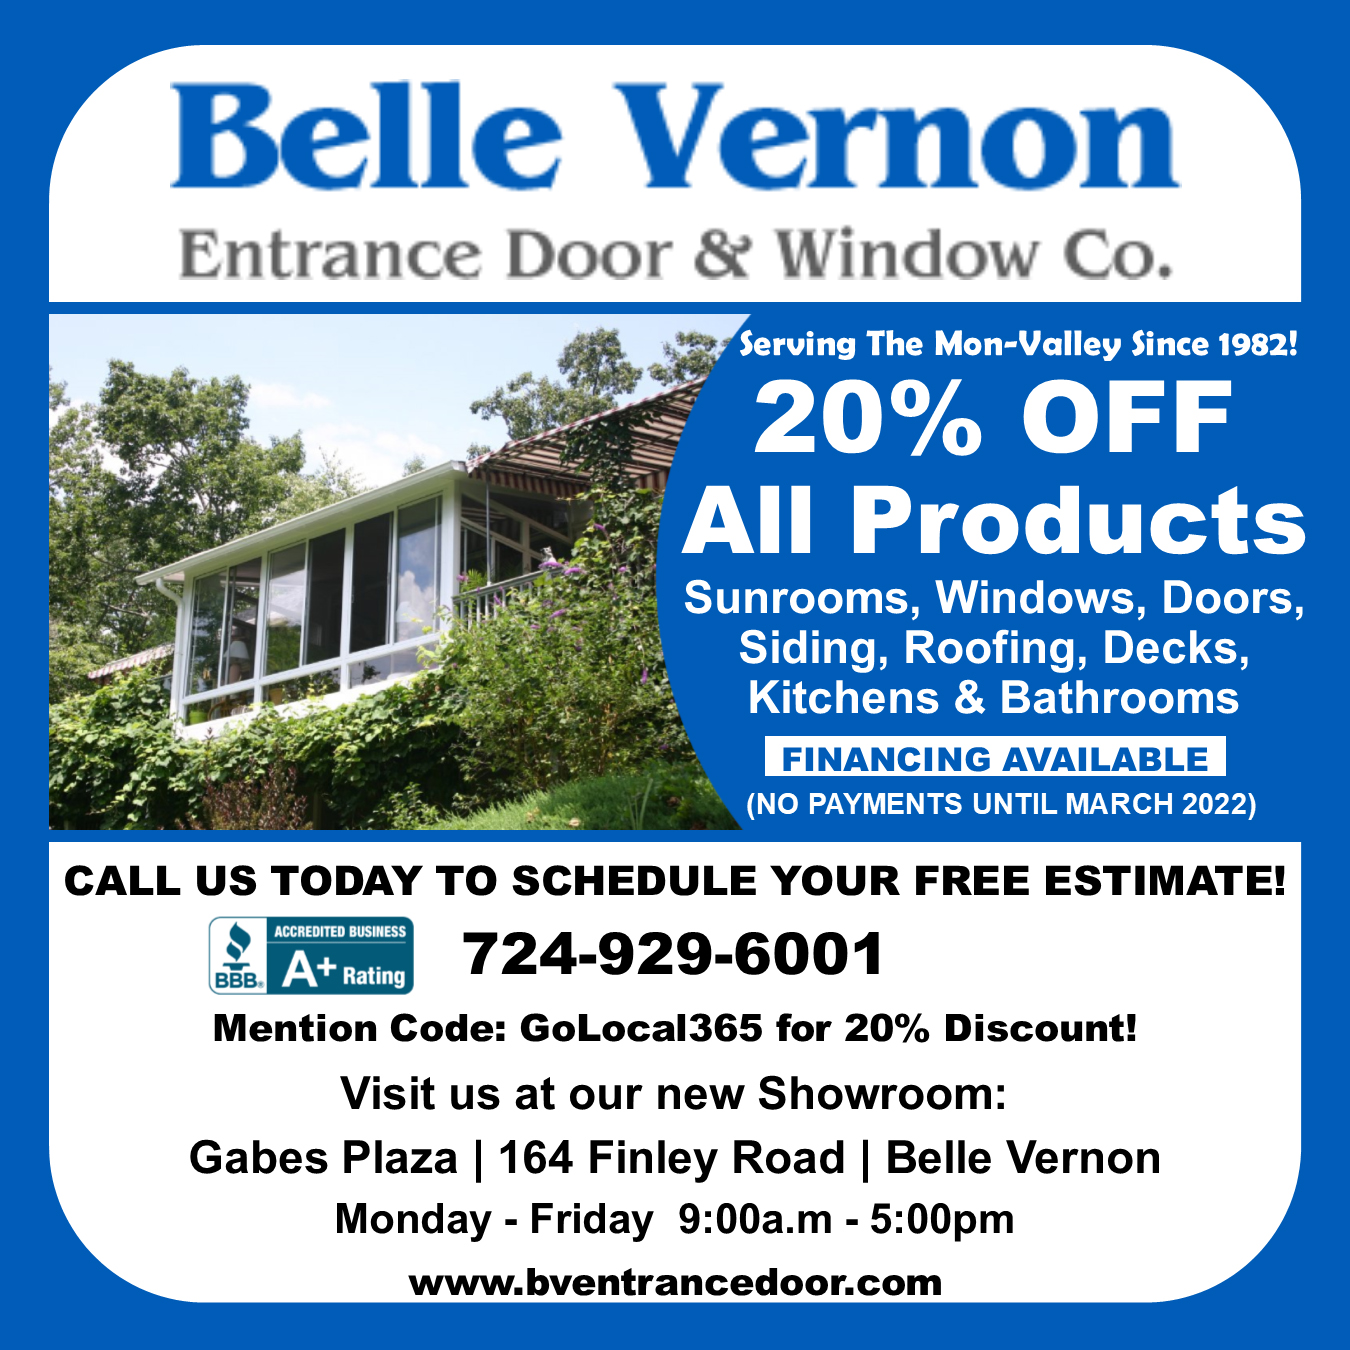 00038231_BV Entrance Door Ad_WEB AD